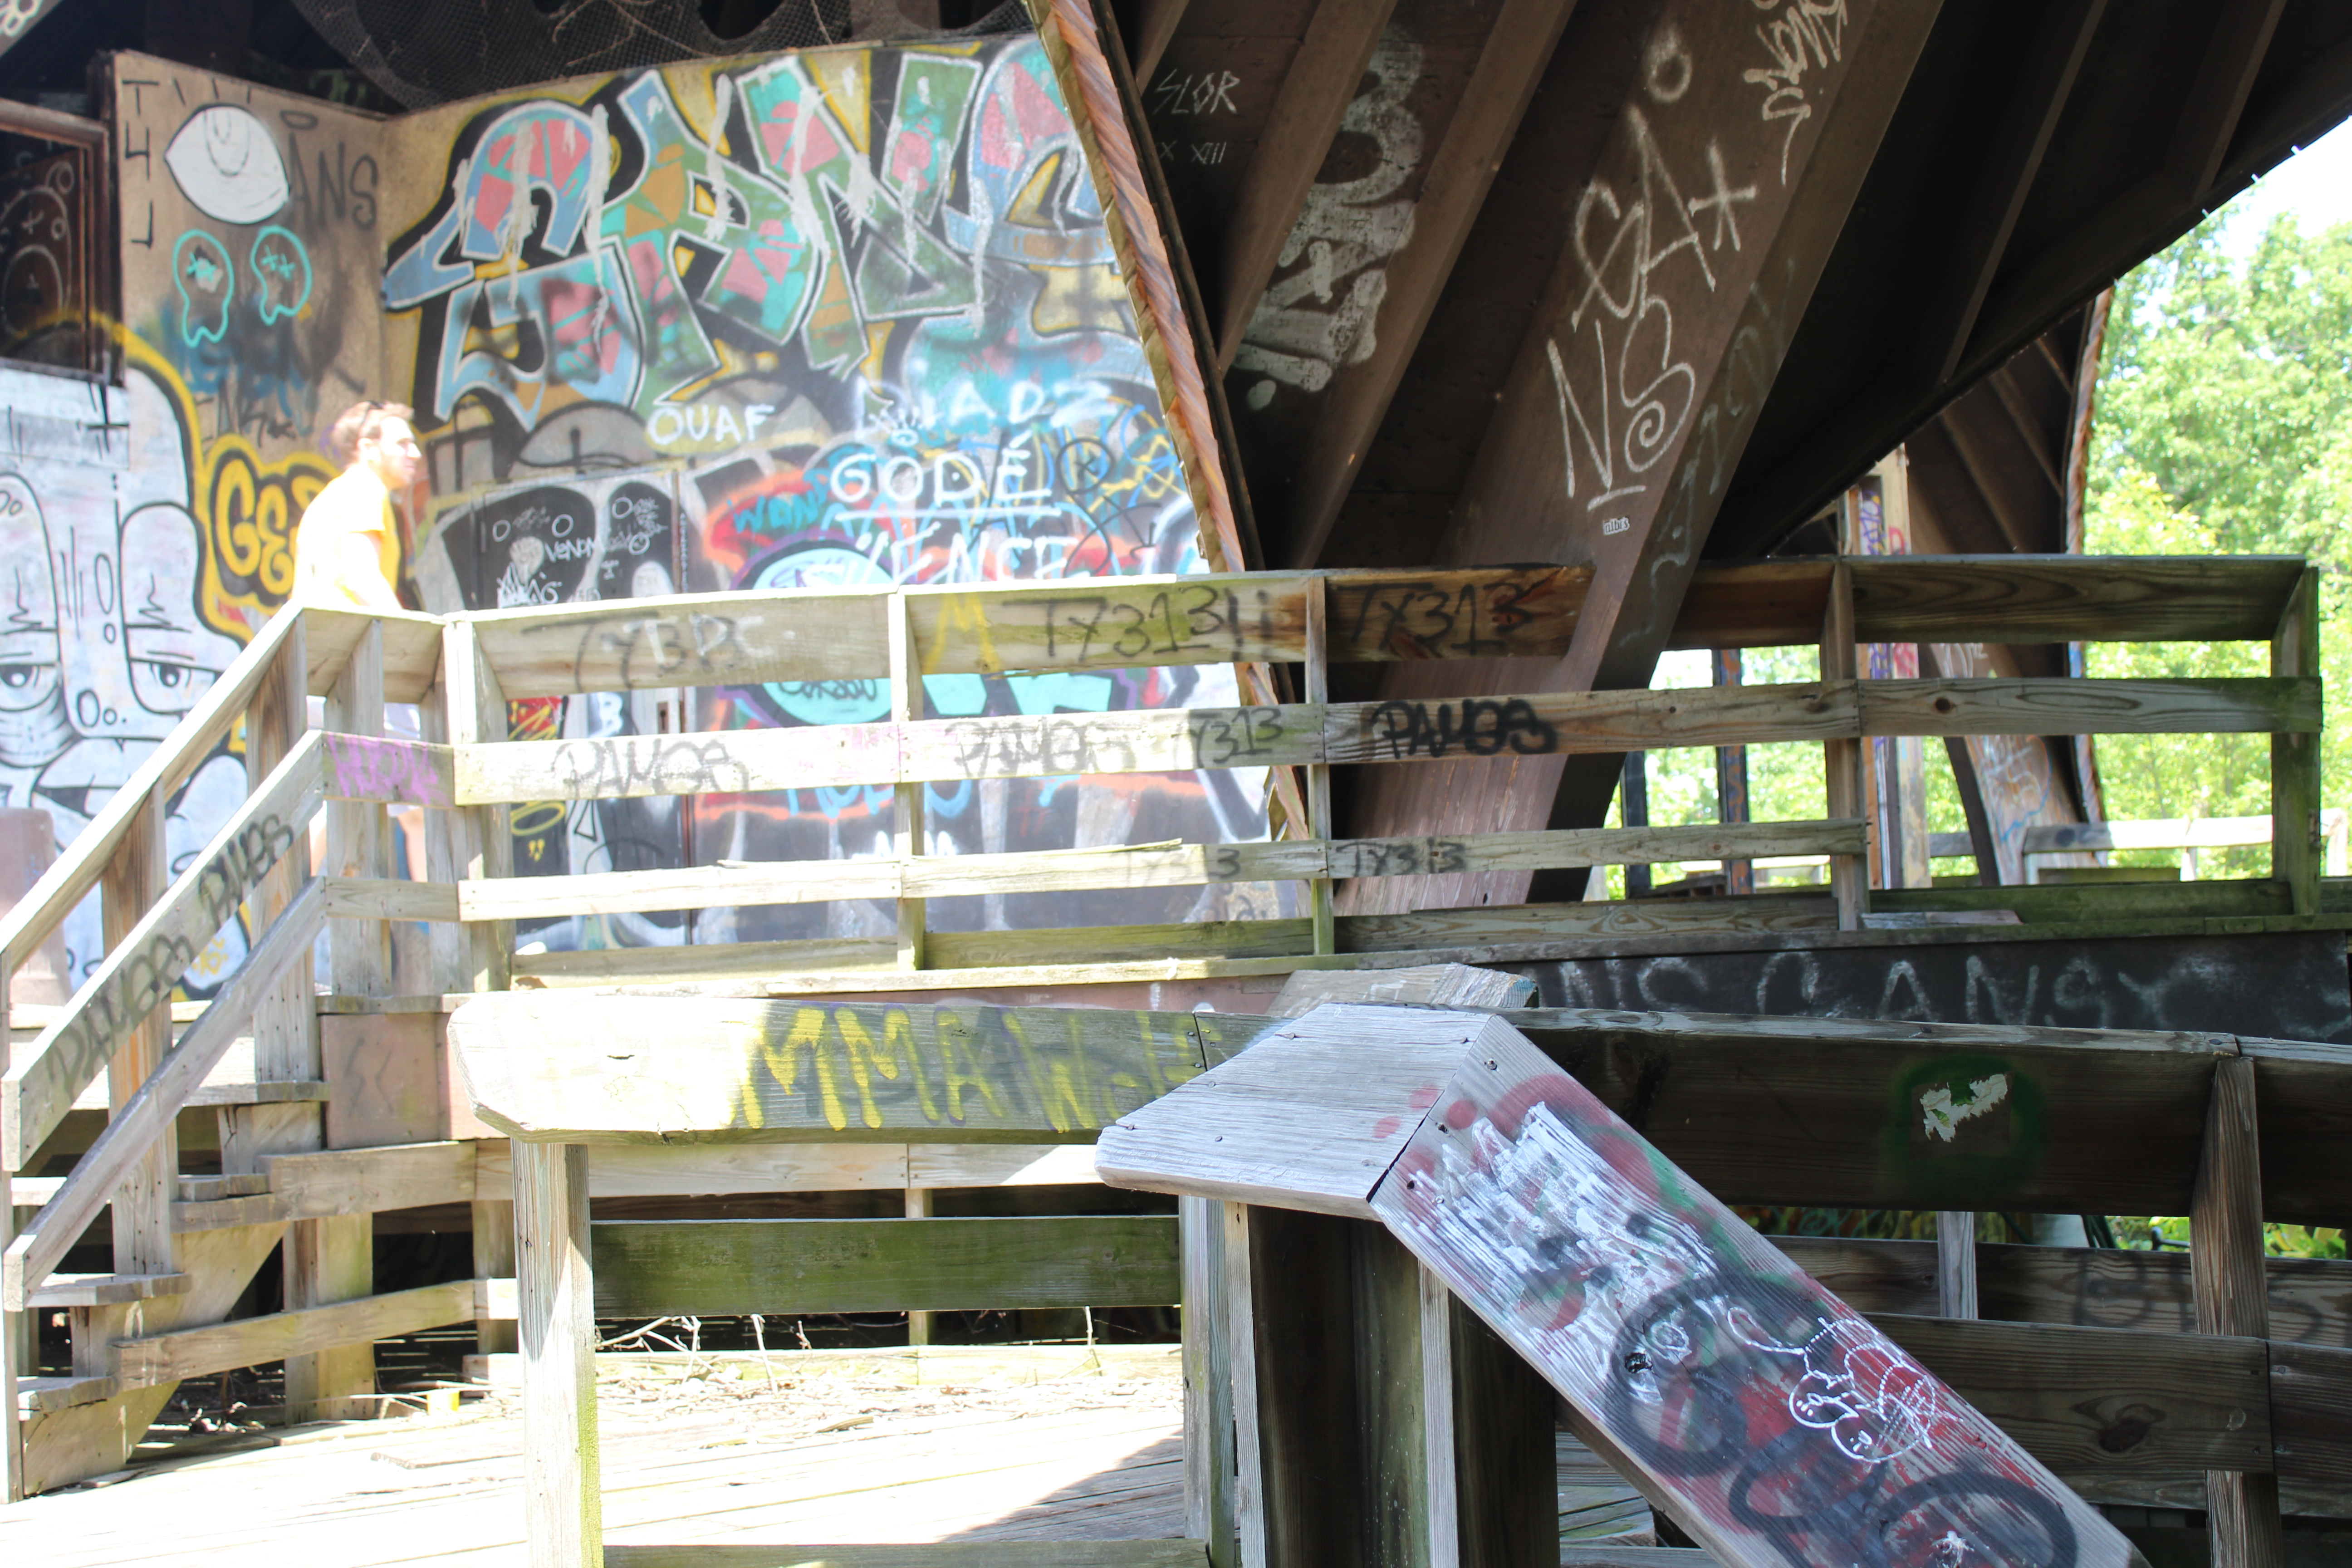 Wooden structure with staircase covered in graffiti at Belle Isle Zoo